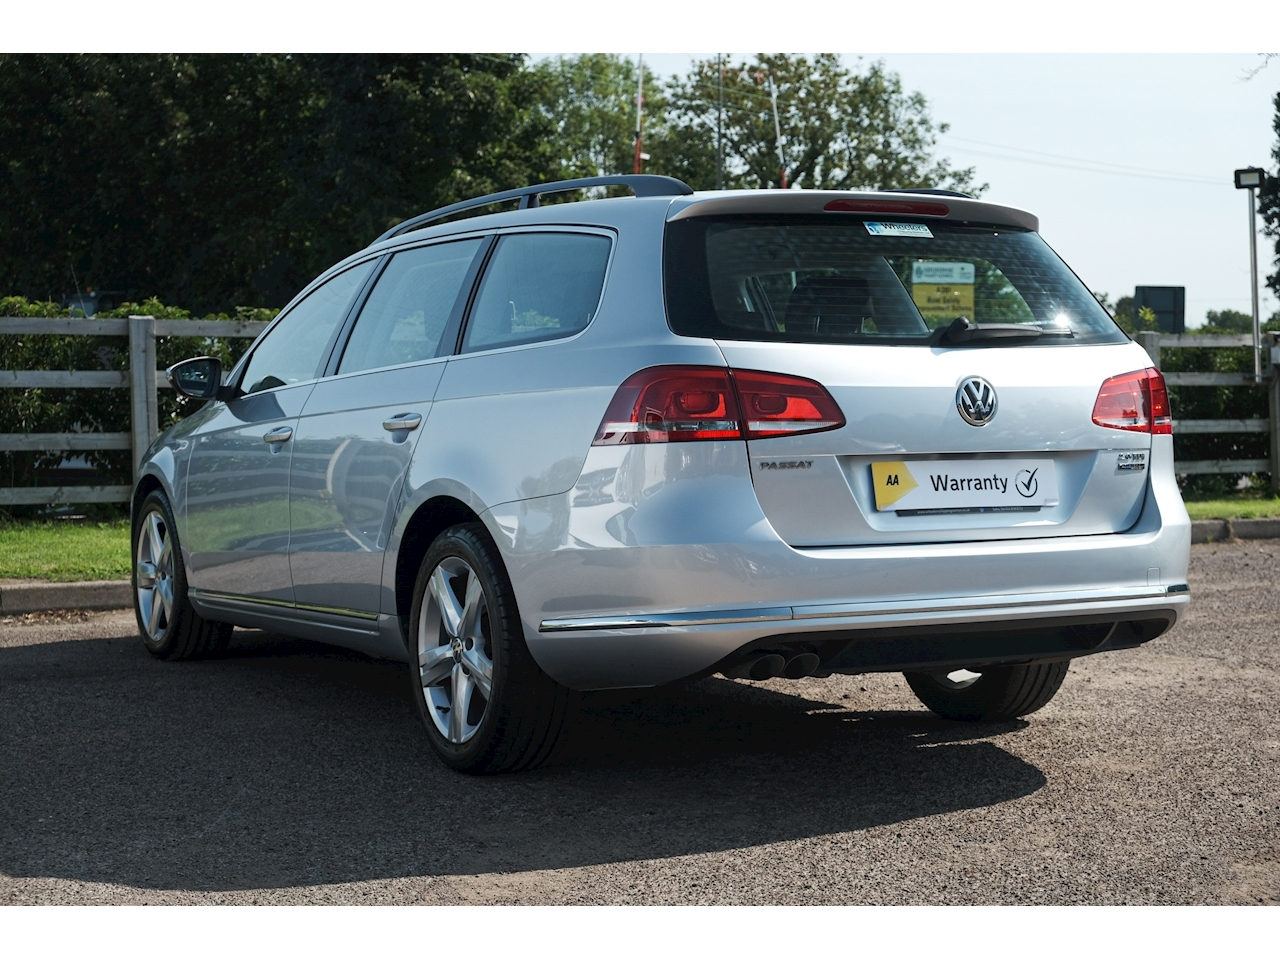 Volkswagen Passat Se Tdi Bluemotion Technology Estate 2.0 Manual Diesel